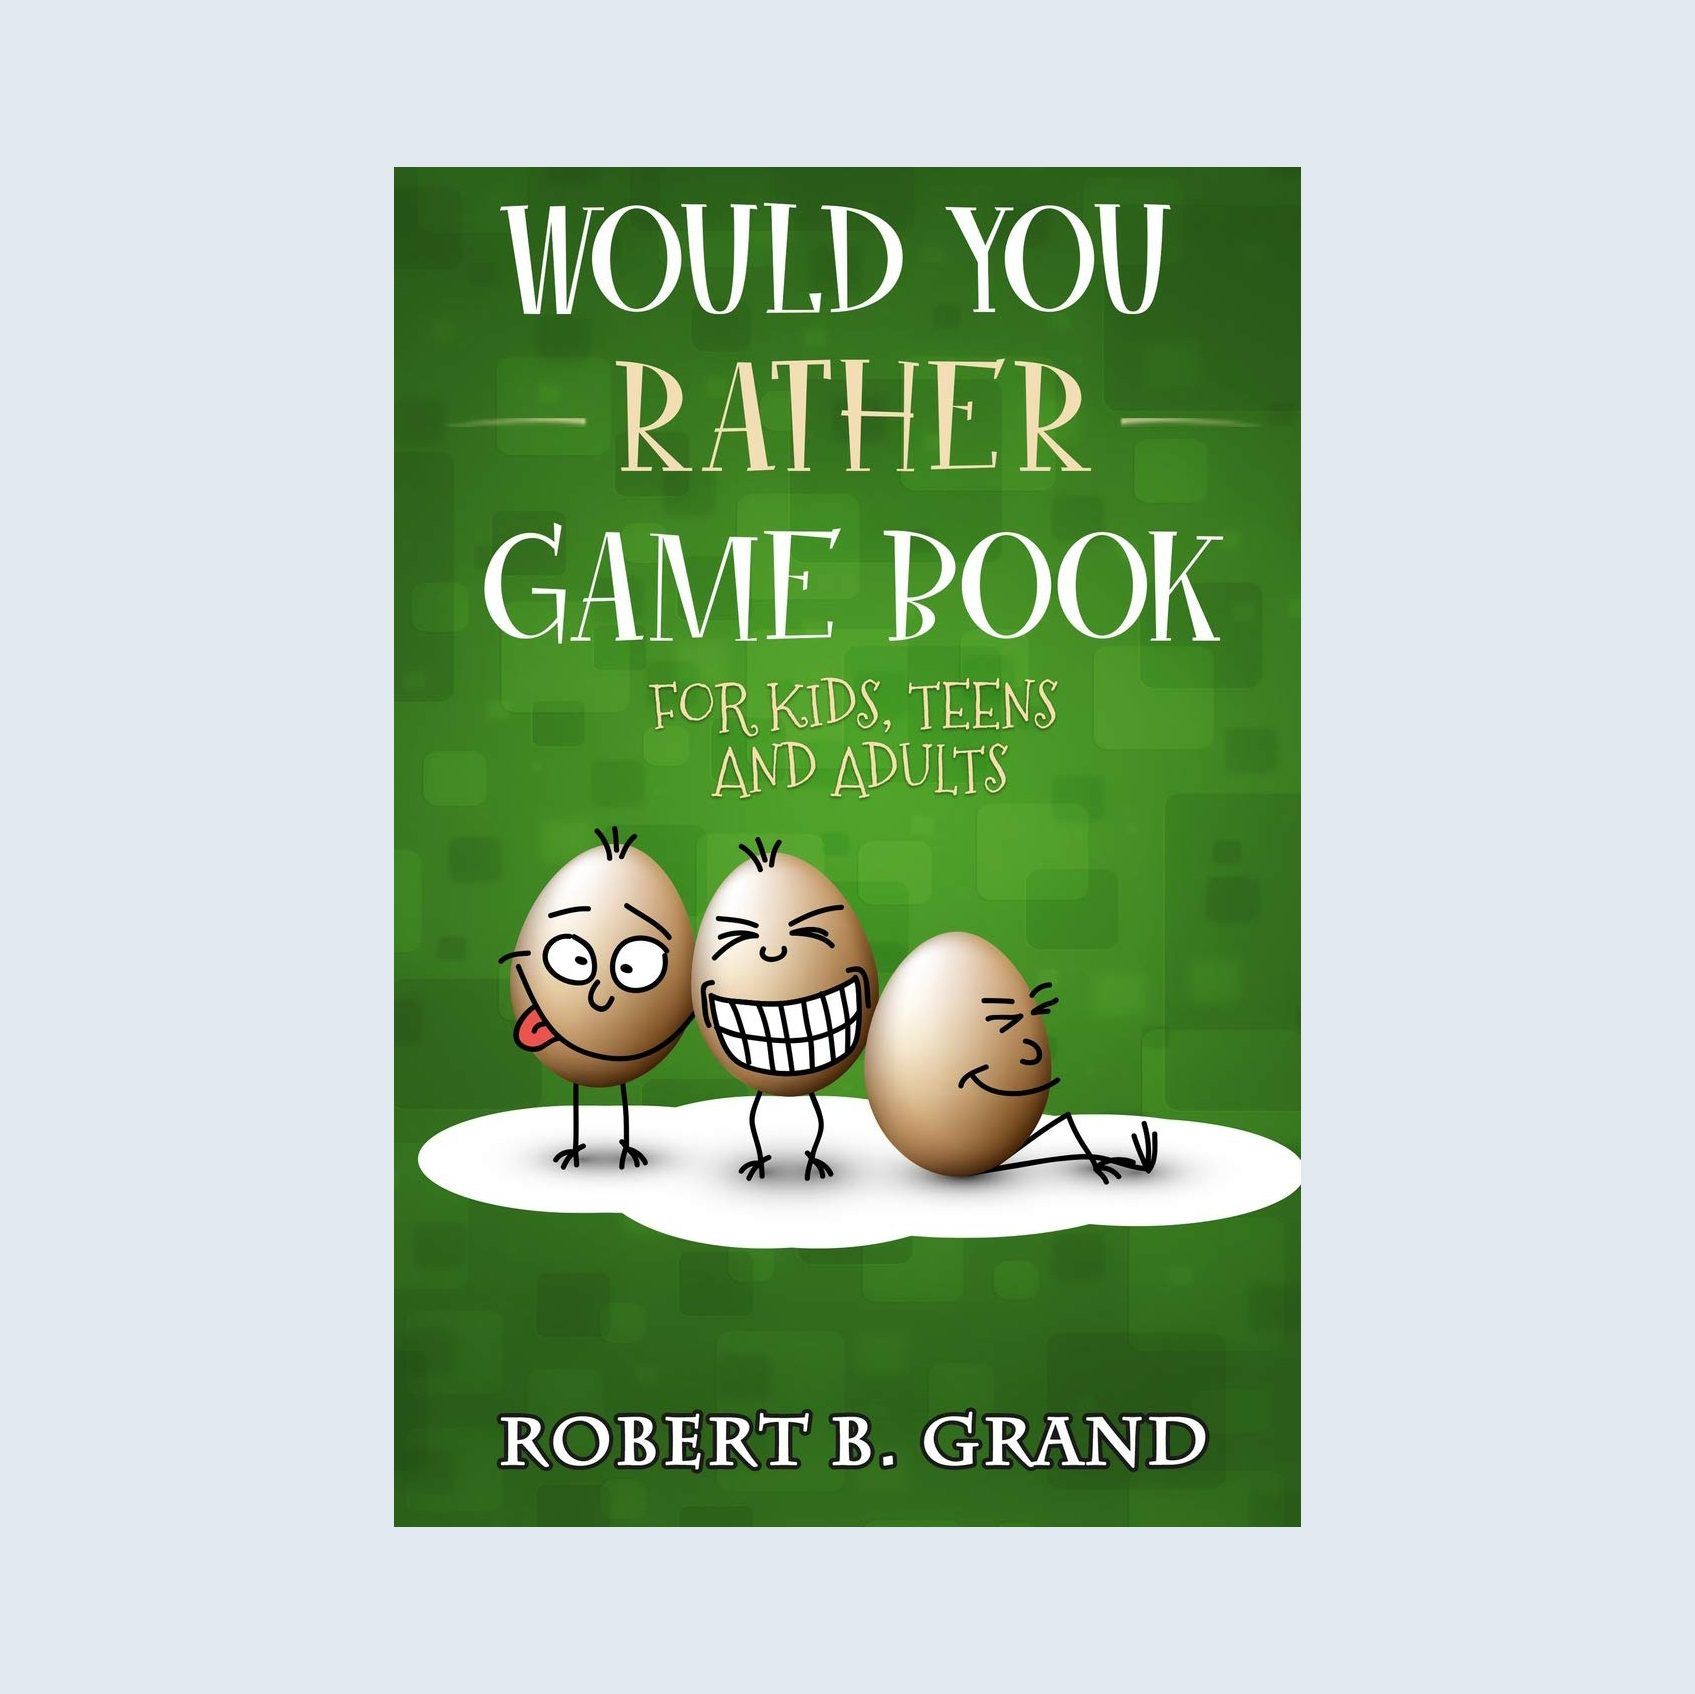 would you rather book